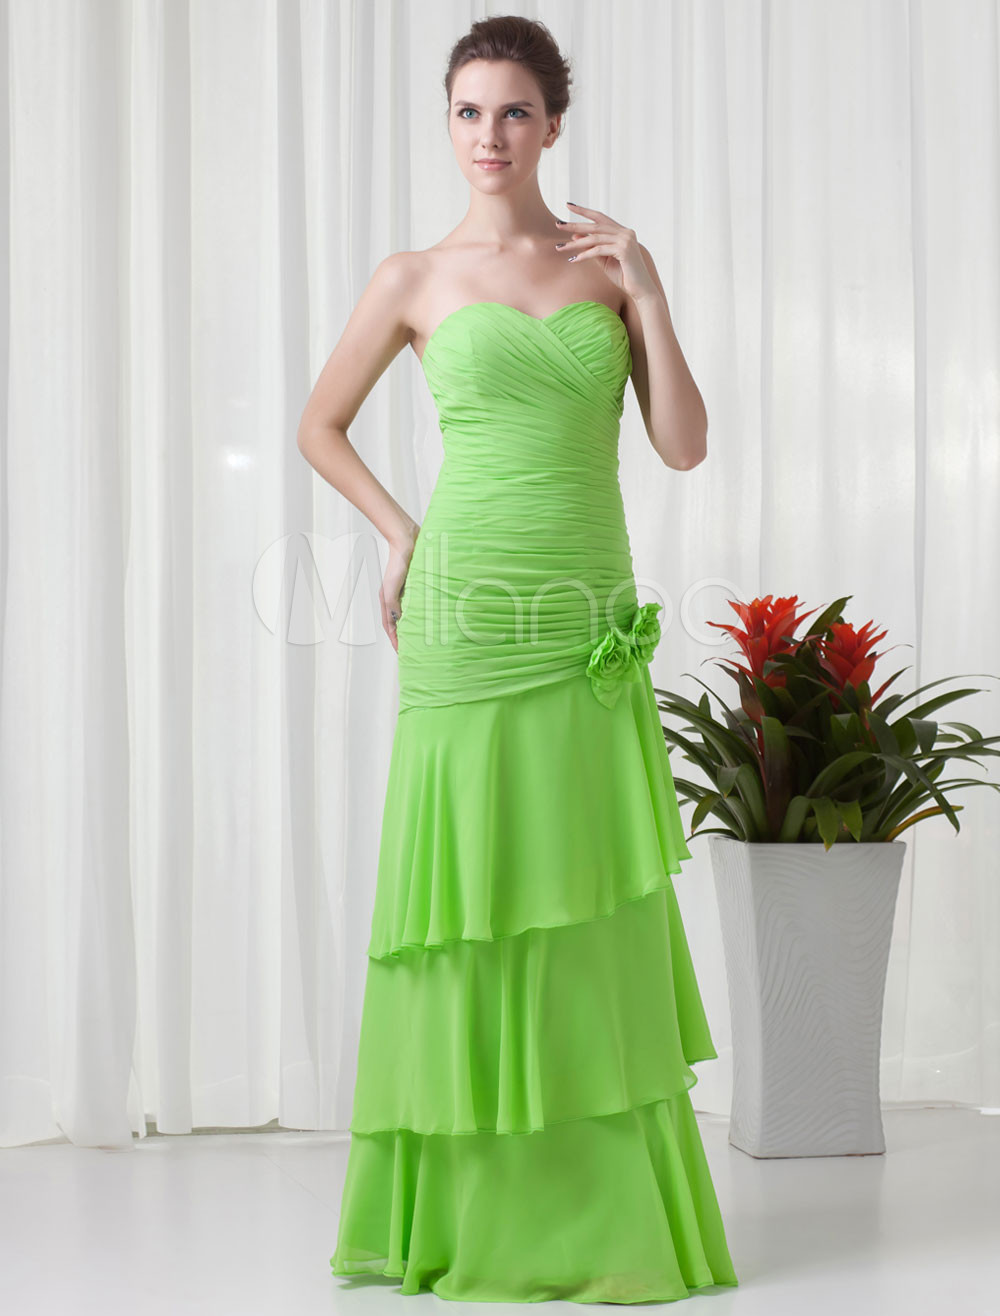 Mermaid Lime Green Chiffon Floral Sweetheart Bridesmaid Dress